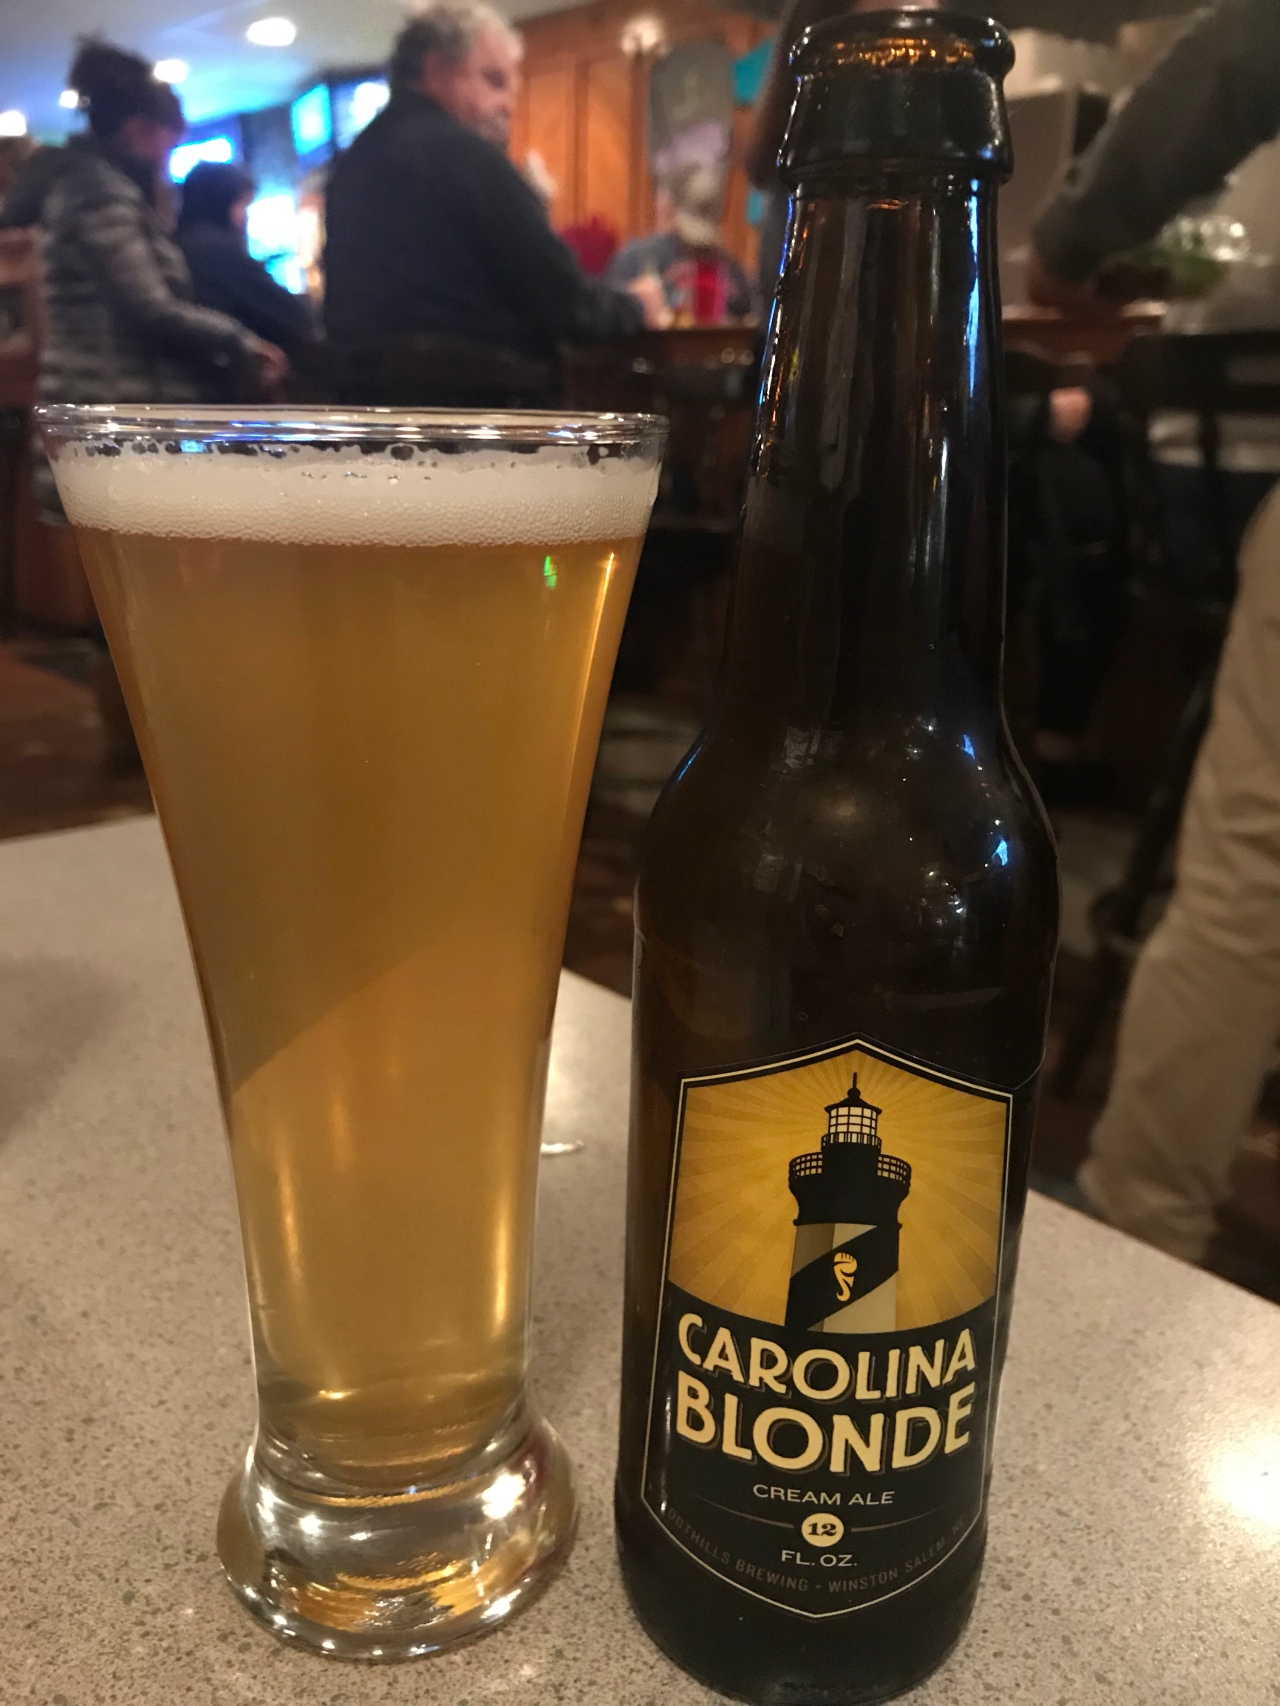 Enjoyed a Carolina Blonde at dinner with my Gorgeous Brunette